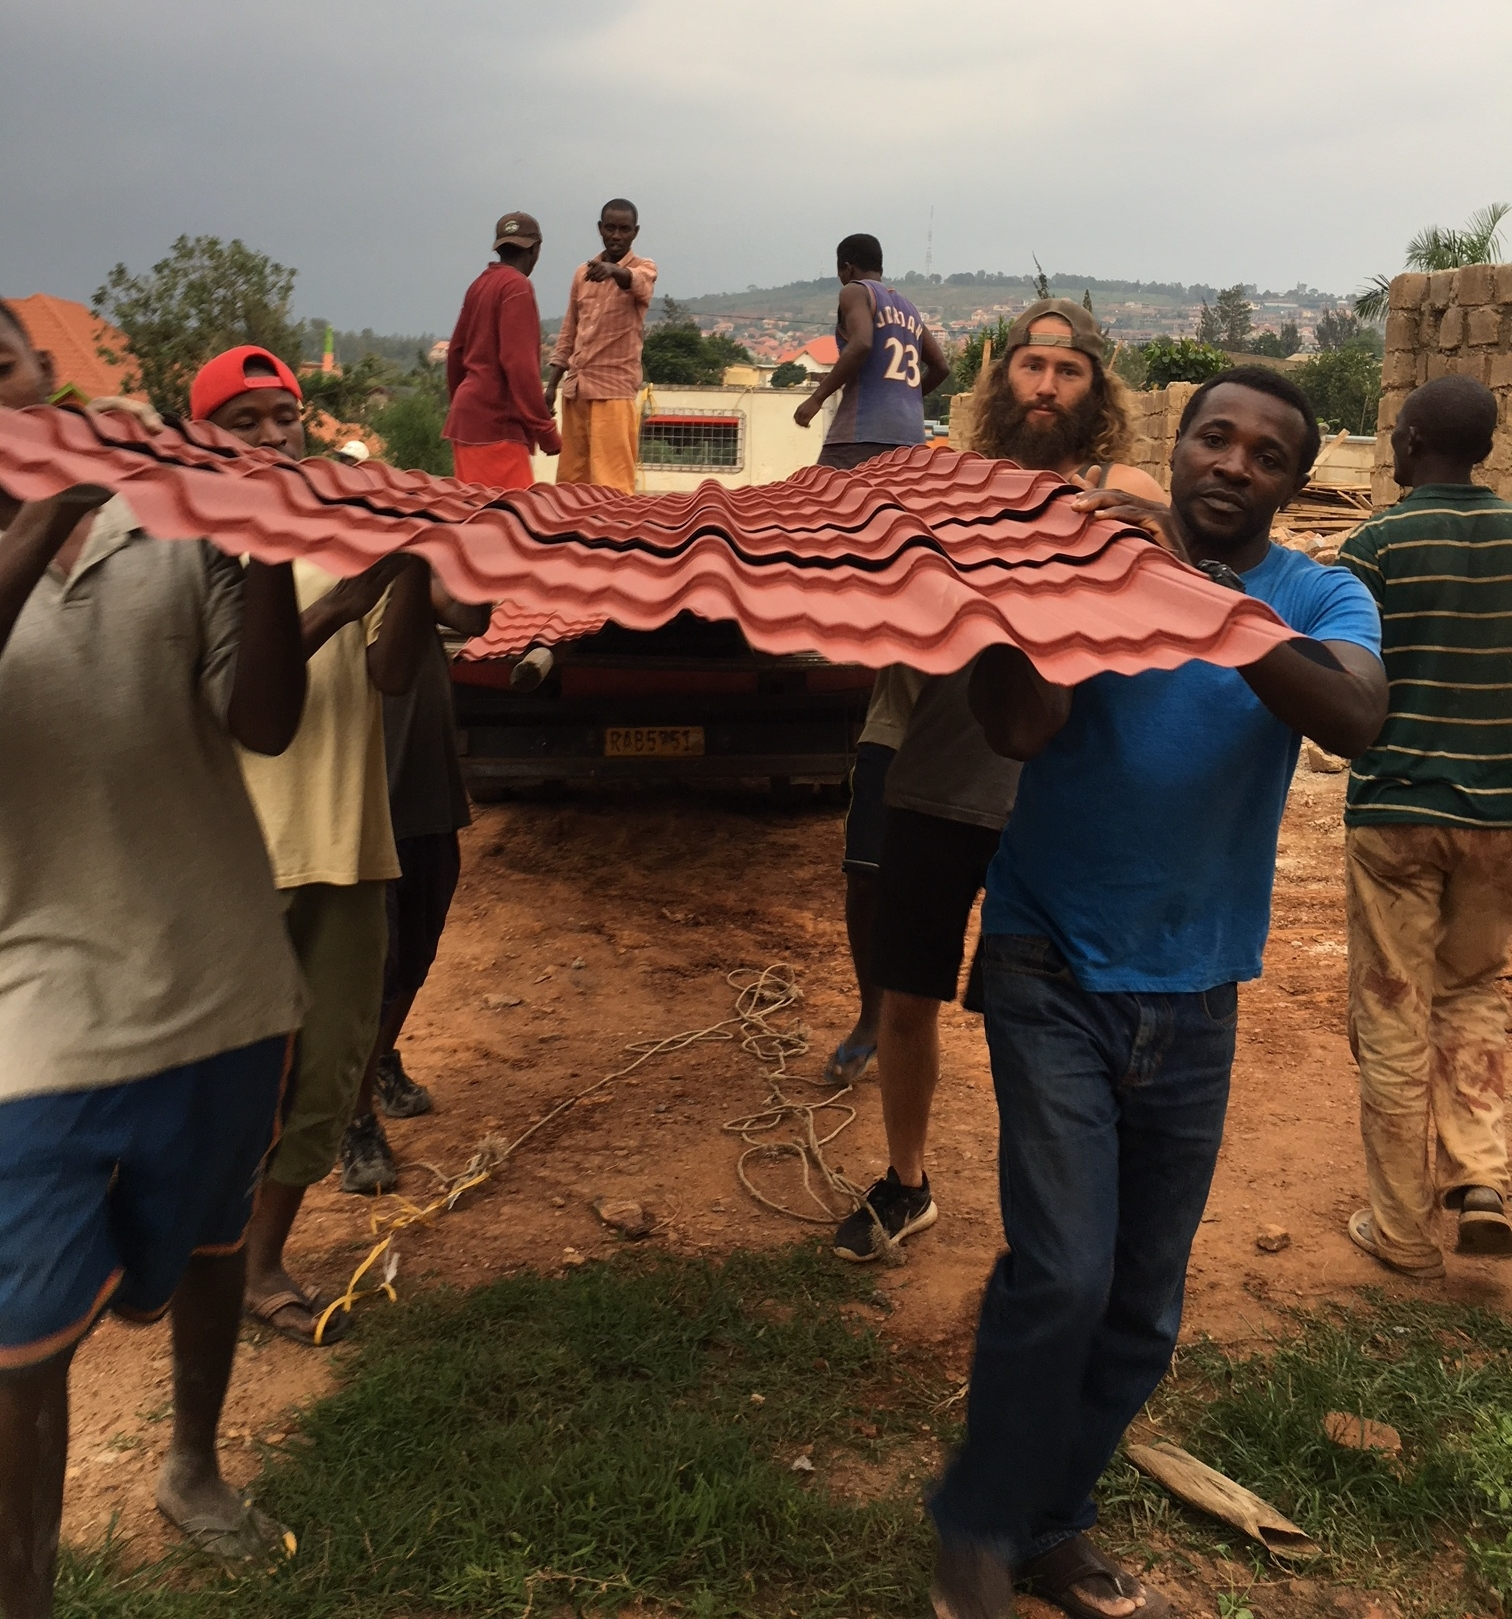 Unloading the metal roofing sheets